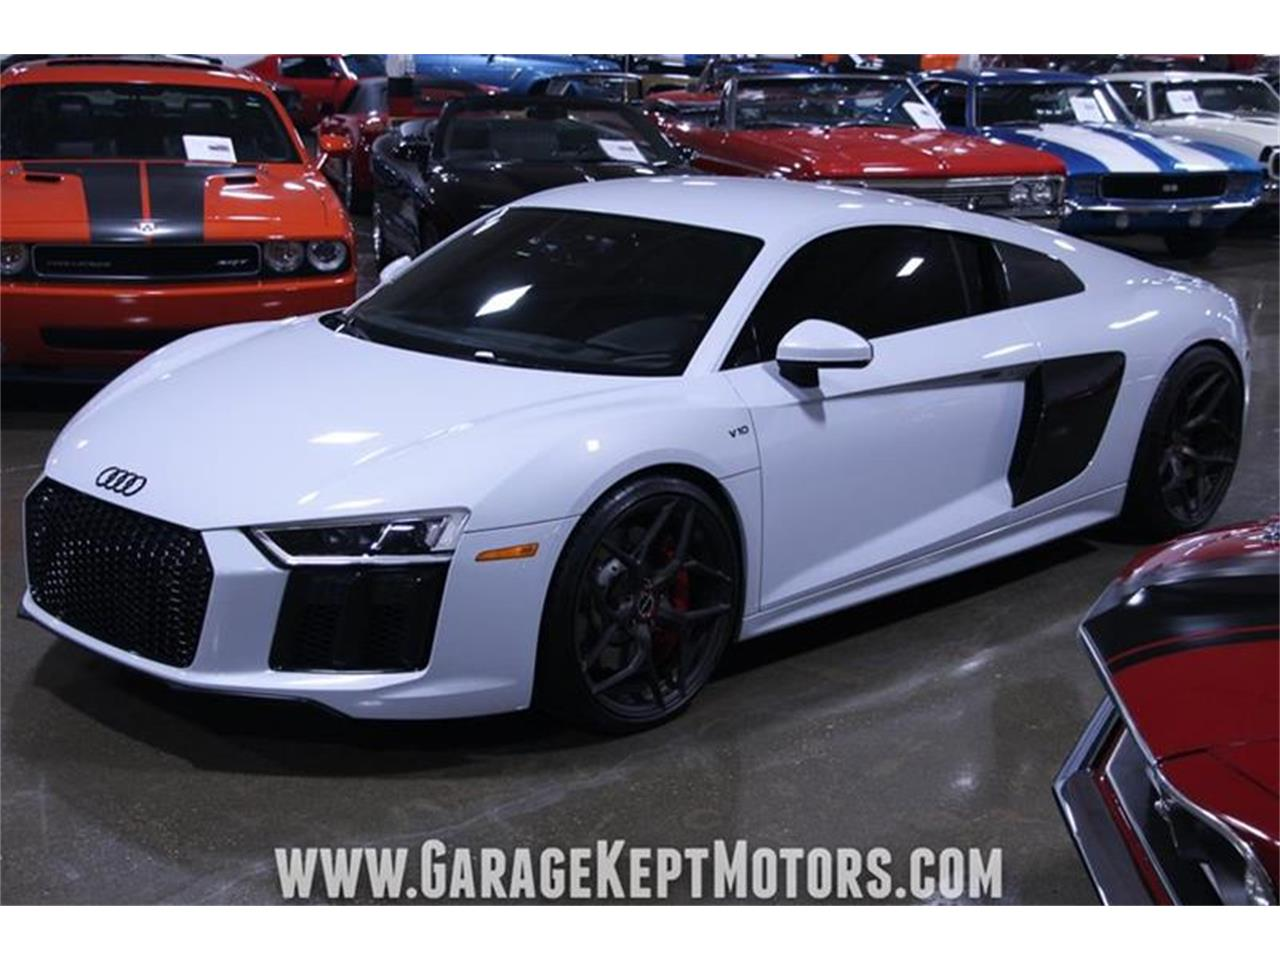 Large Picture of '17 Audi R8 located in Grand Rapids Michigan - $149,900.00 - QBYC